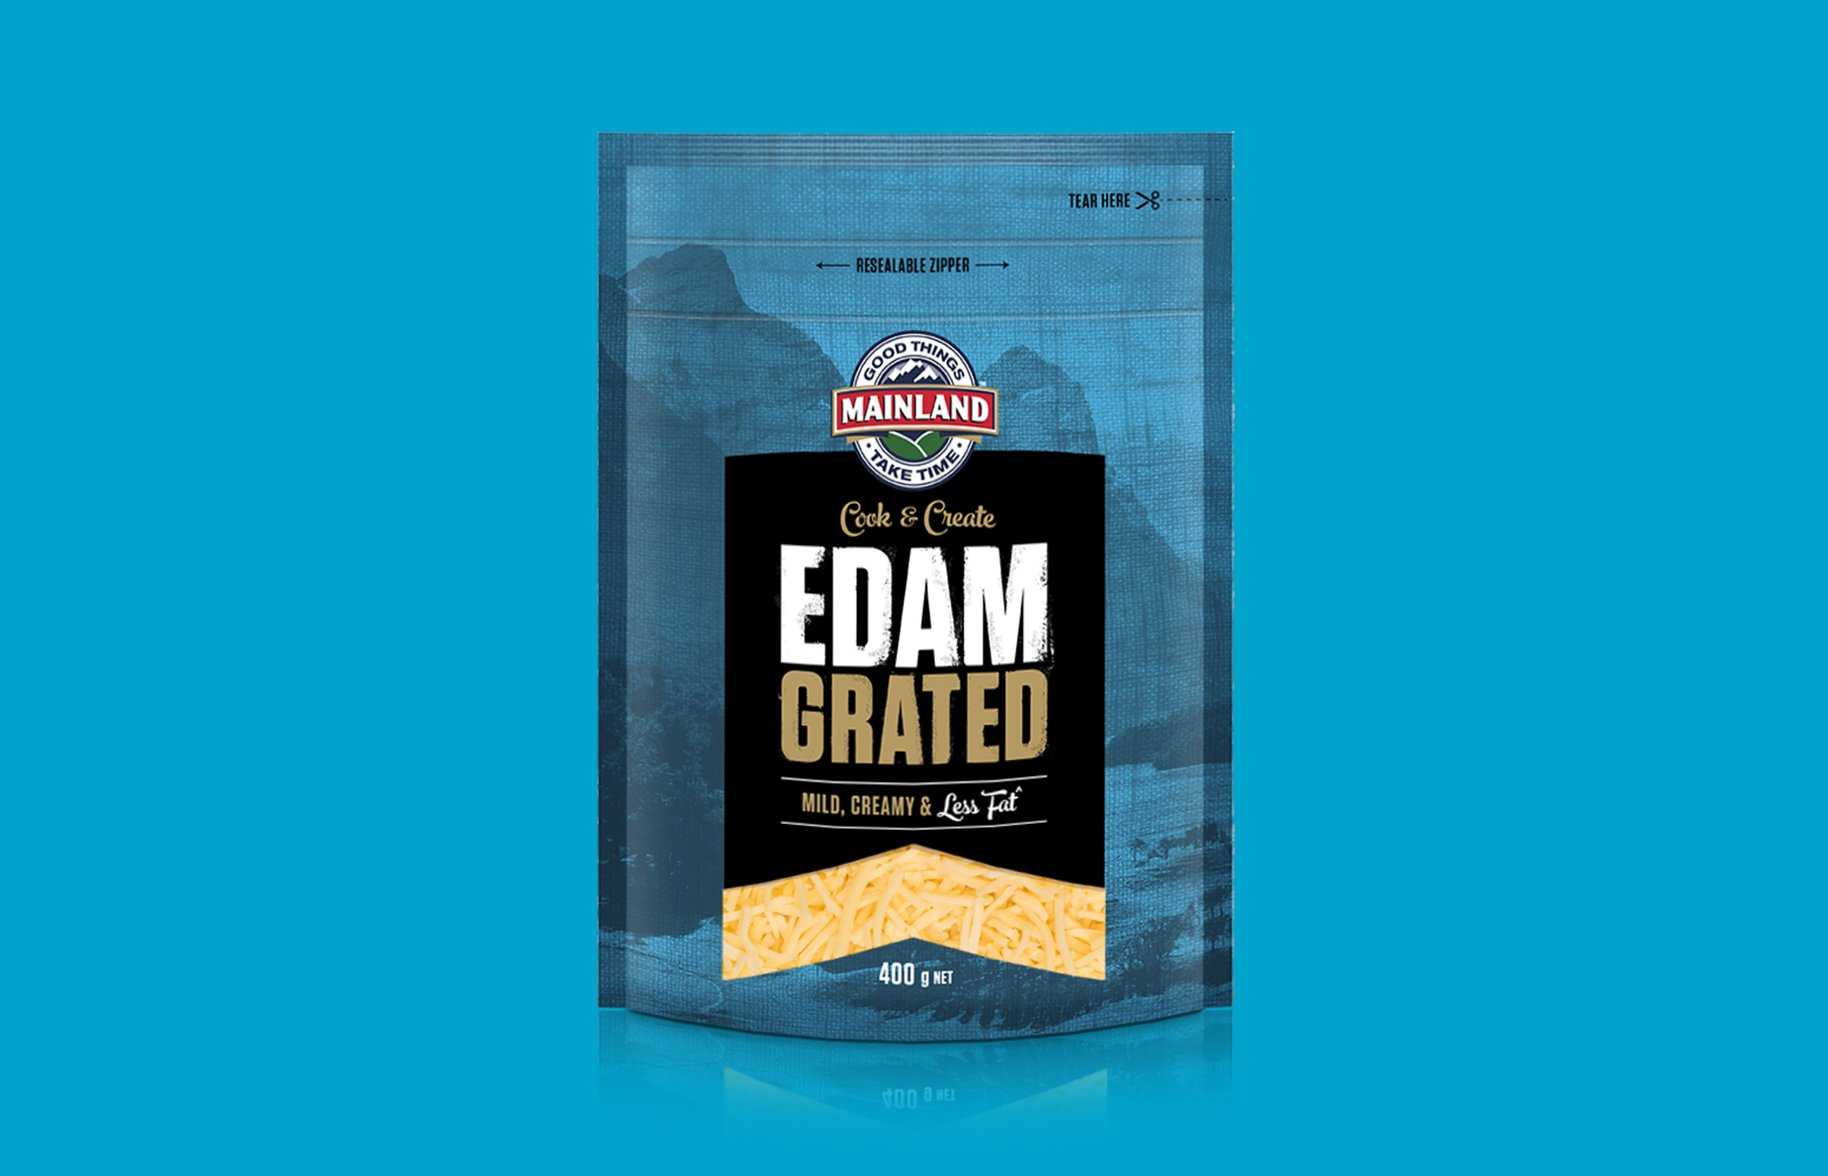 Mainland Edam Grated Packaging